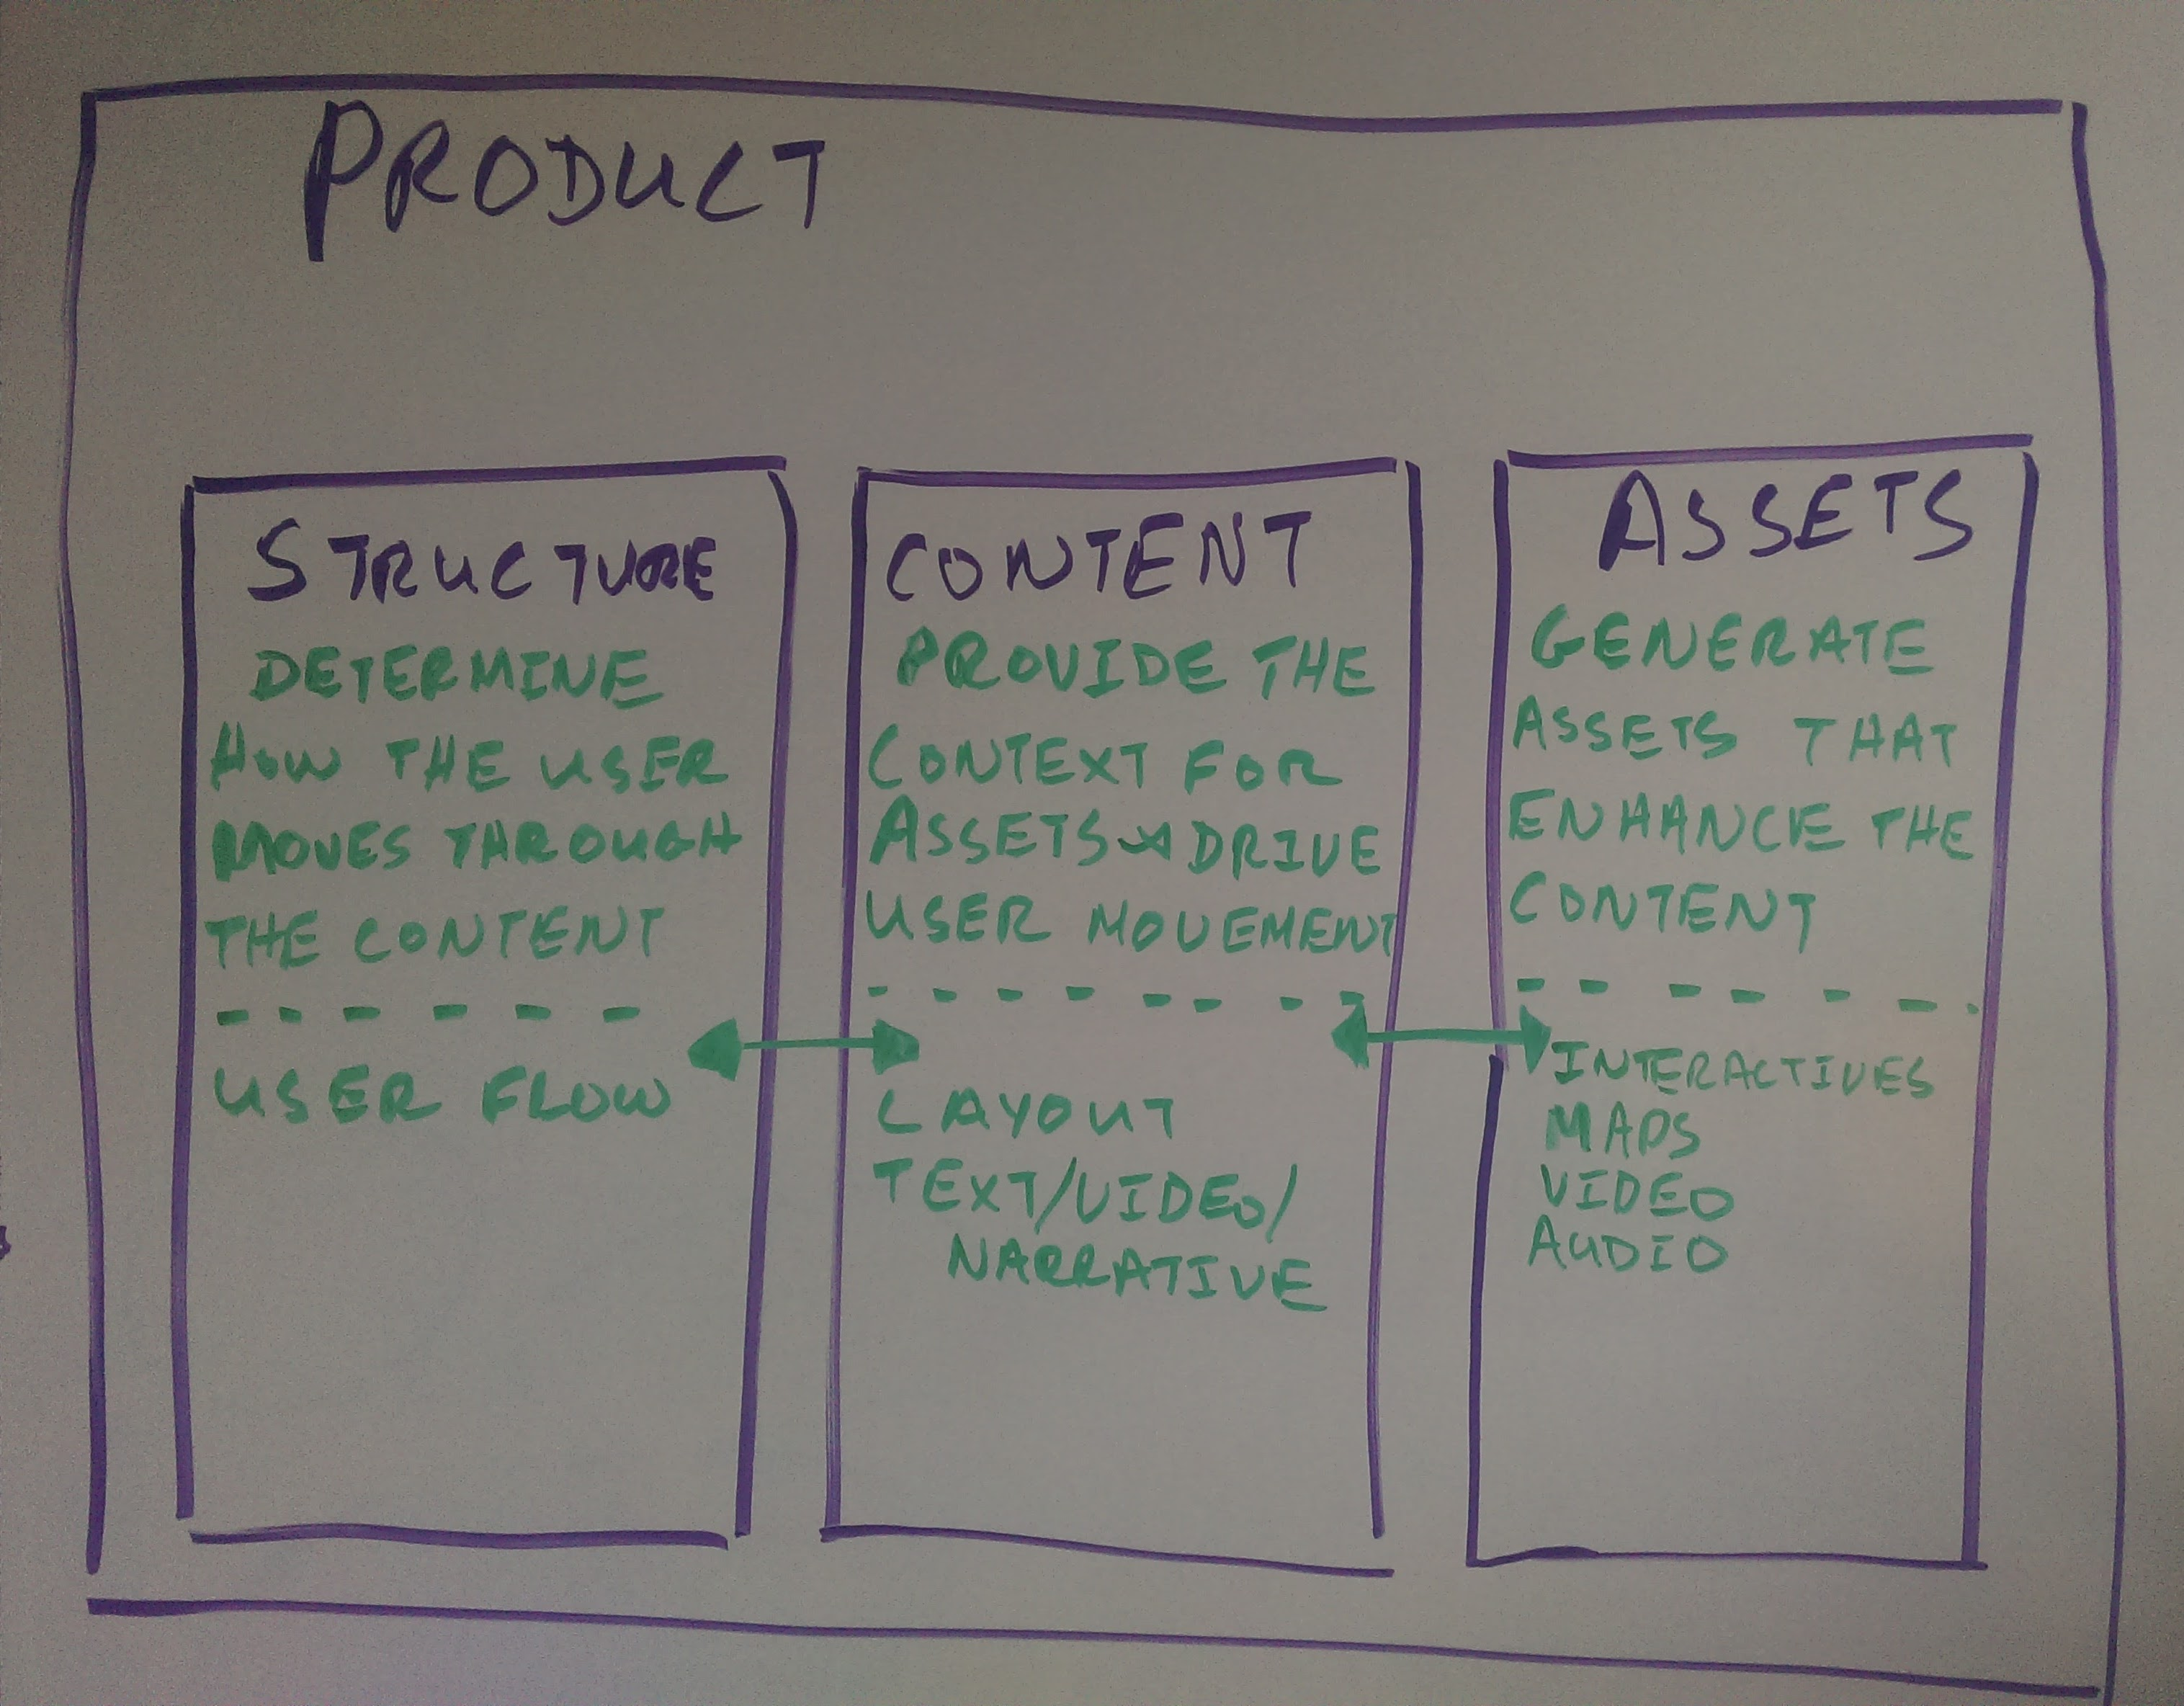 My early exploration of how we structure our products. This helped me to design a products whose process would reflect this structure.